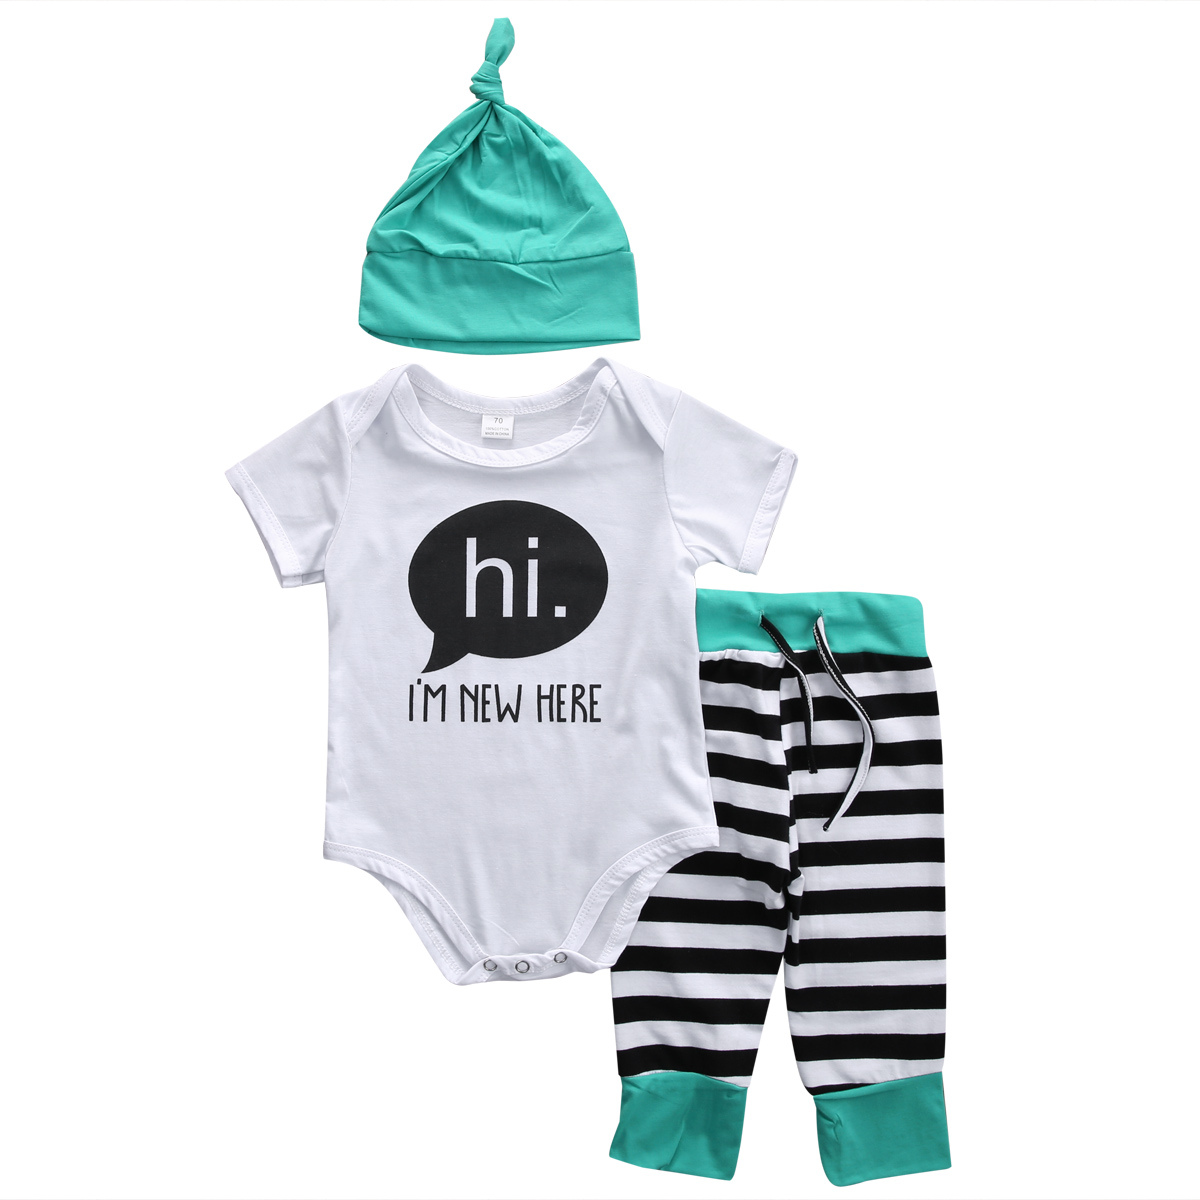 3Pcs Newborn Baby Boys Girls Clothes Short Sleeve Rompers Pants Hats Kids Toddler cotton summer Casual suits Outfits Set